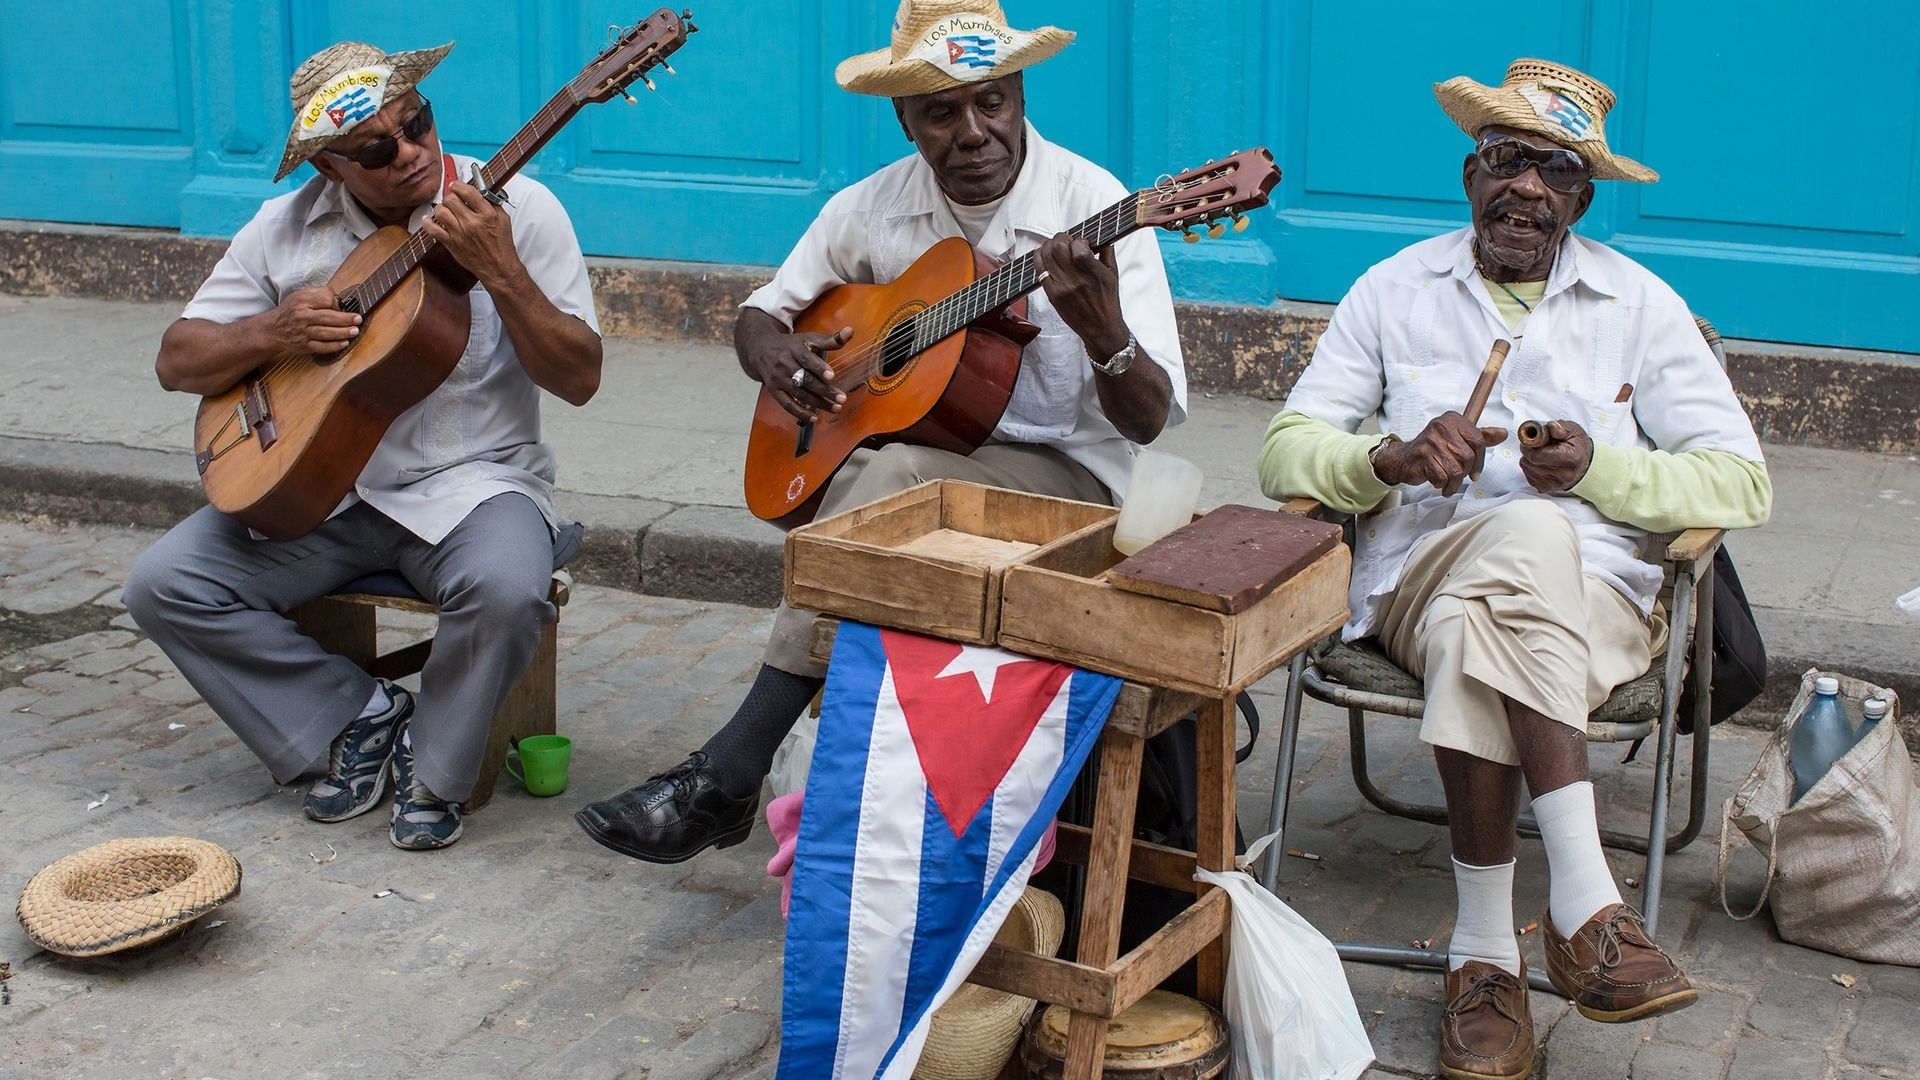 Musicians perform on the street in Old Havana - Credit: Getty Images